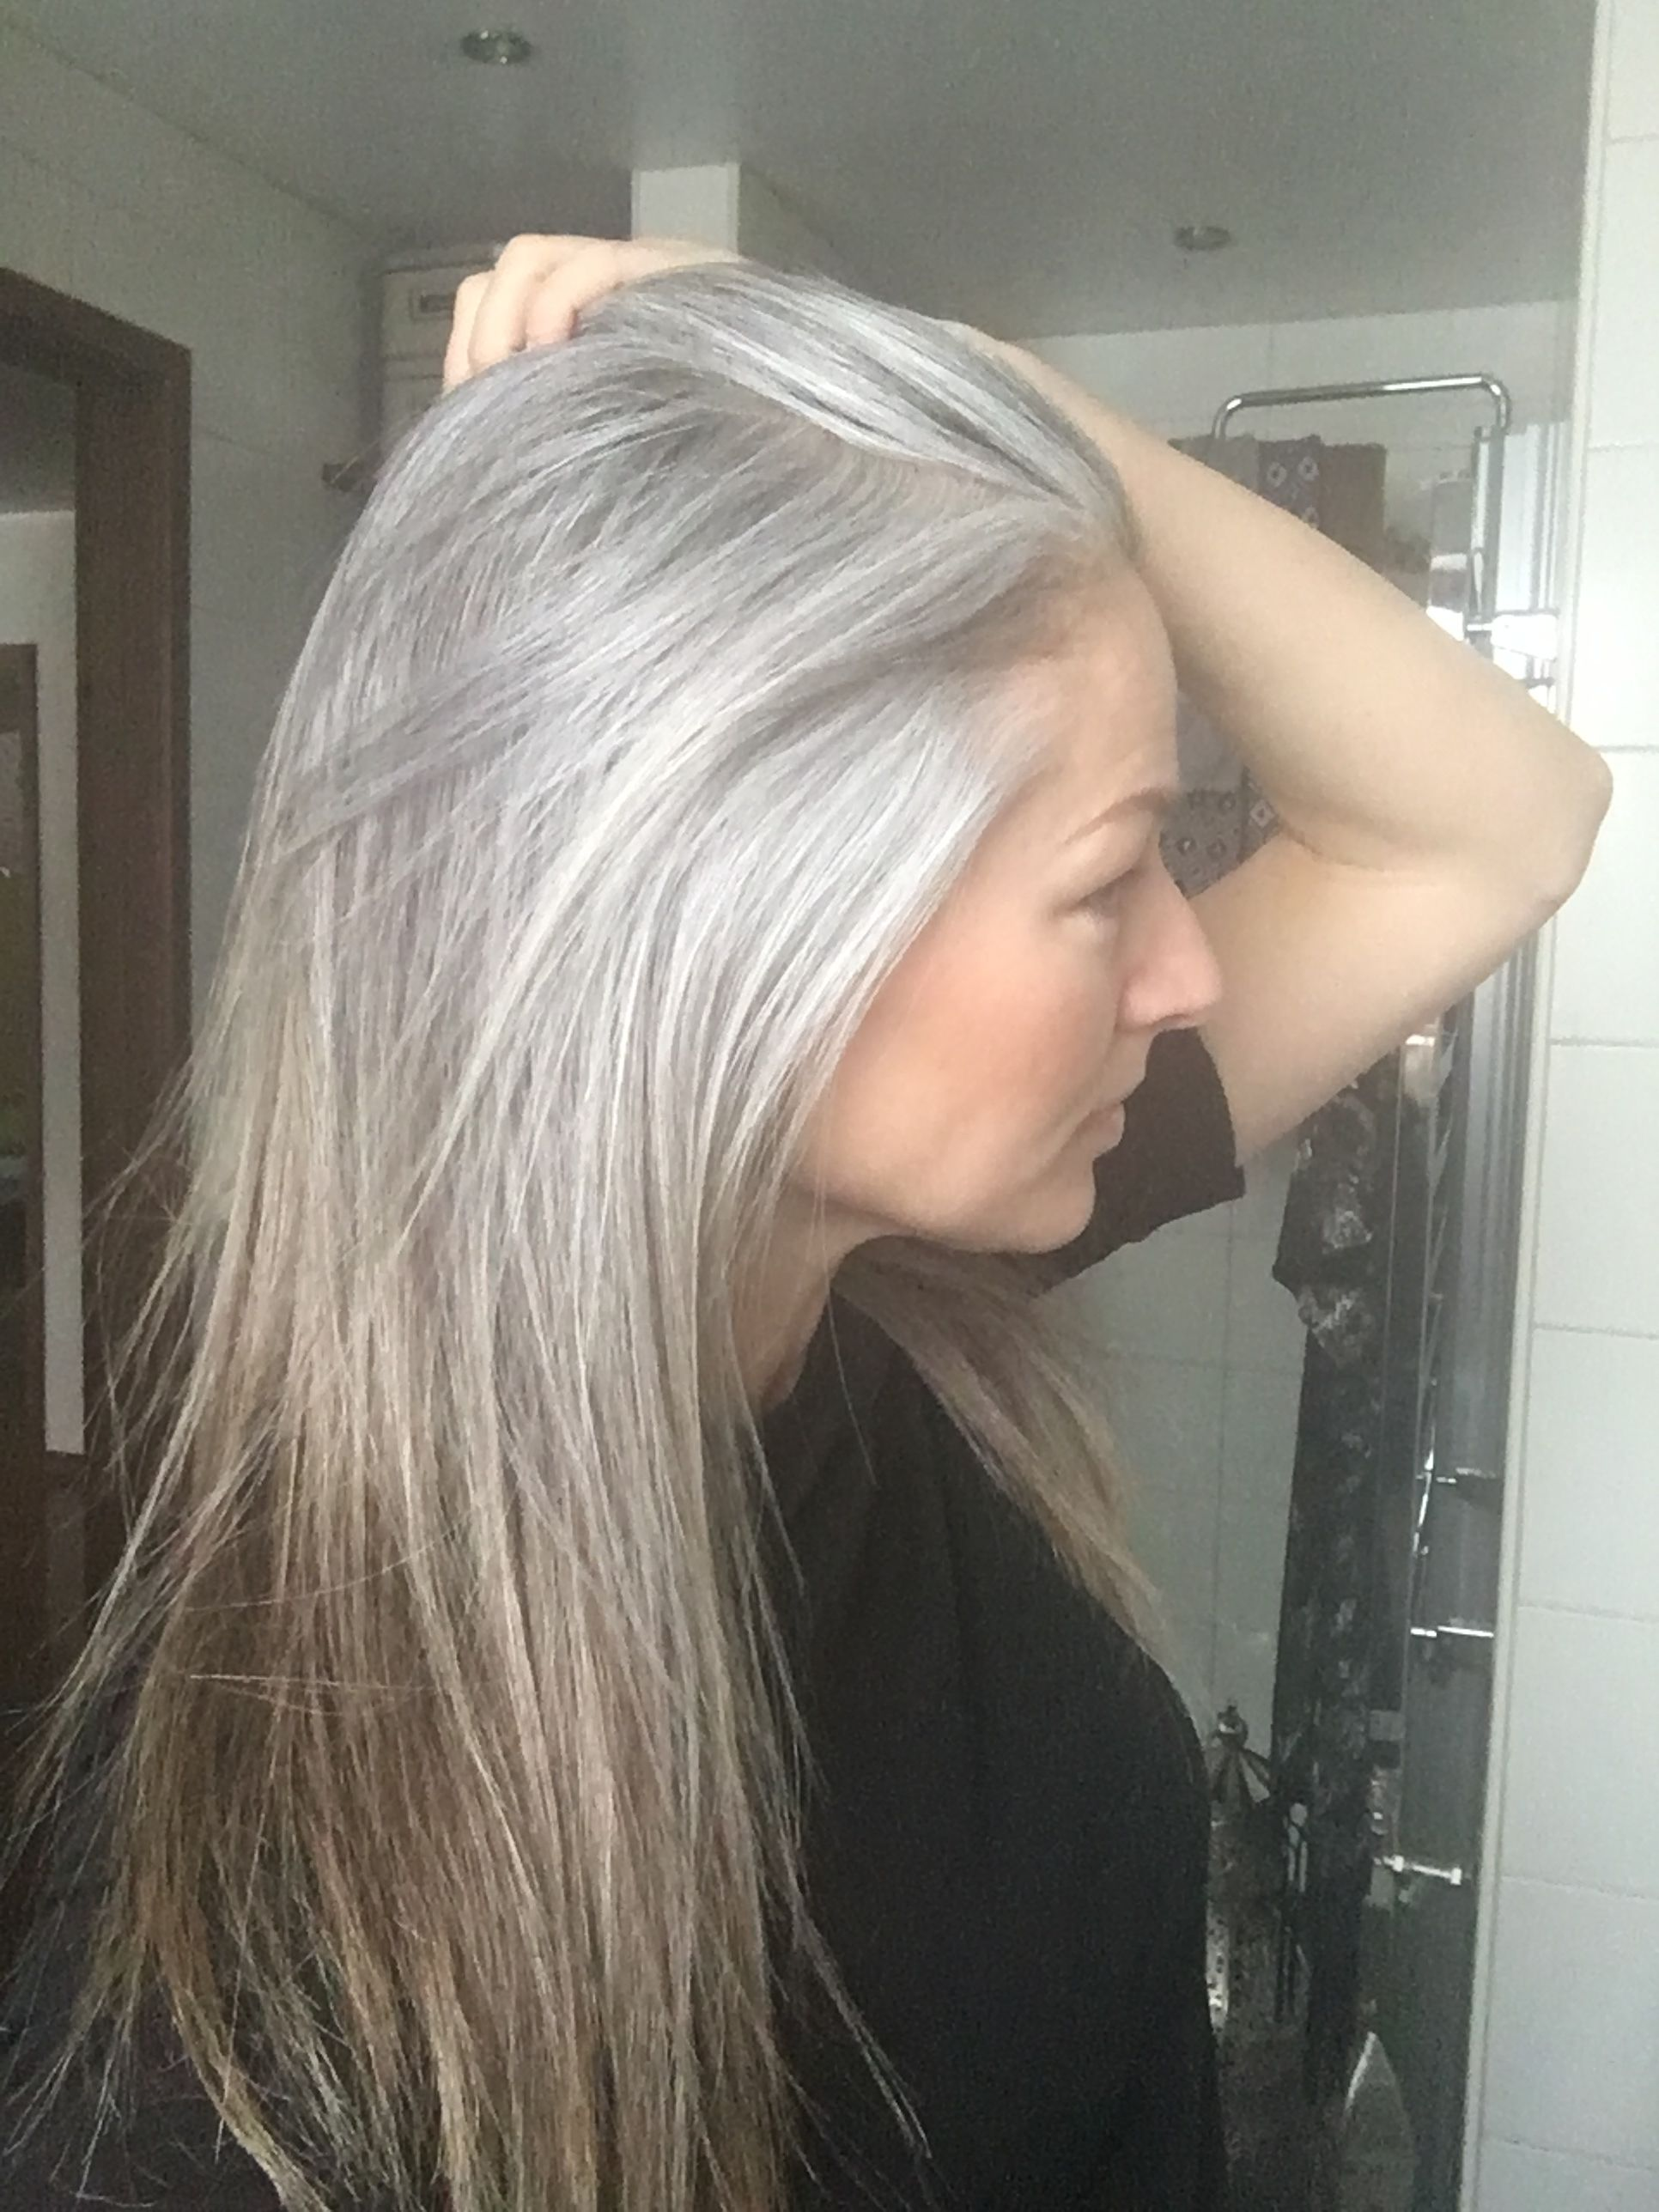 Grey is the new blonde | Morning reflection on my natural hair color ...